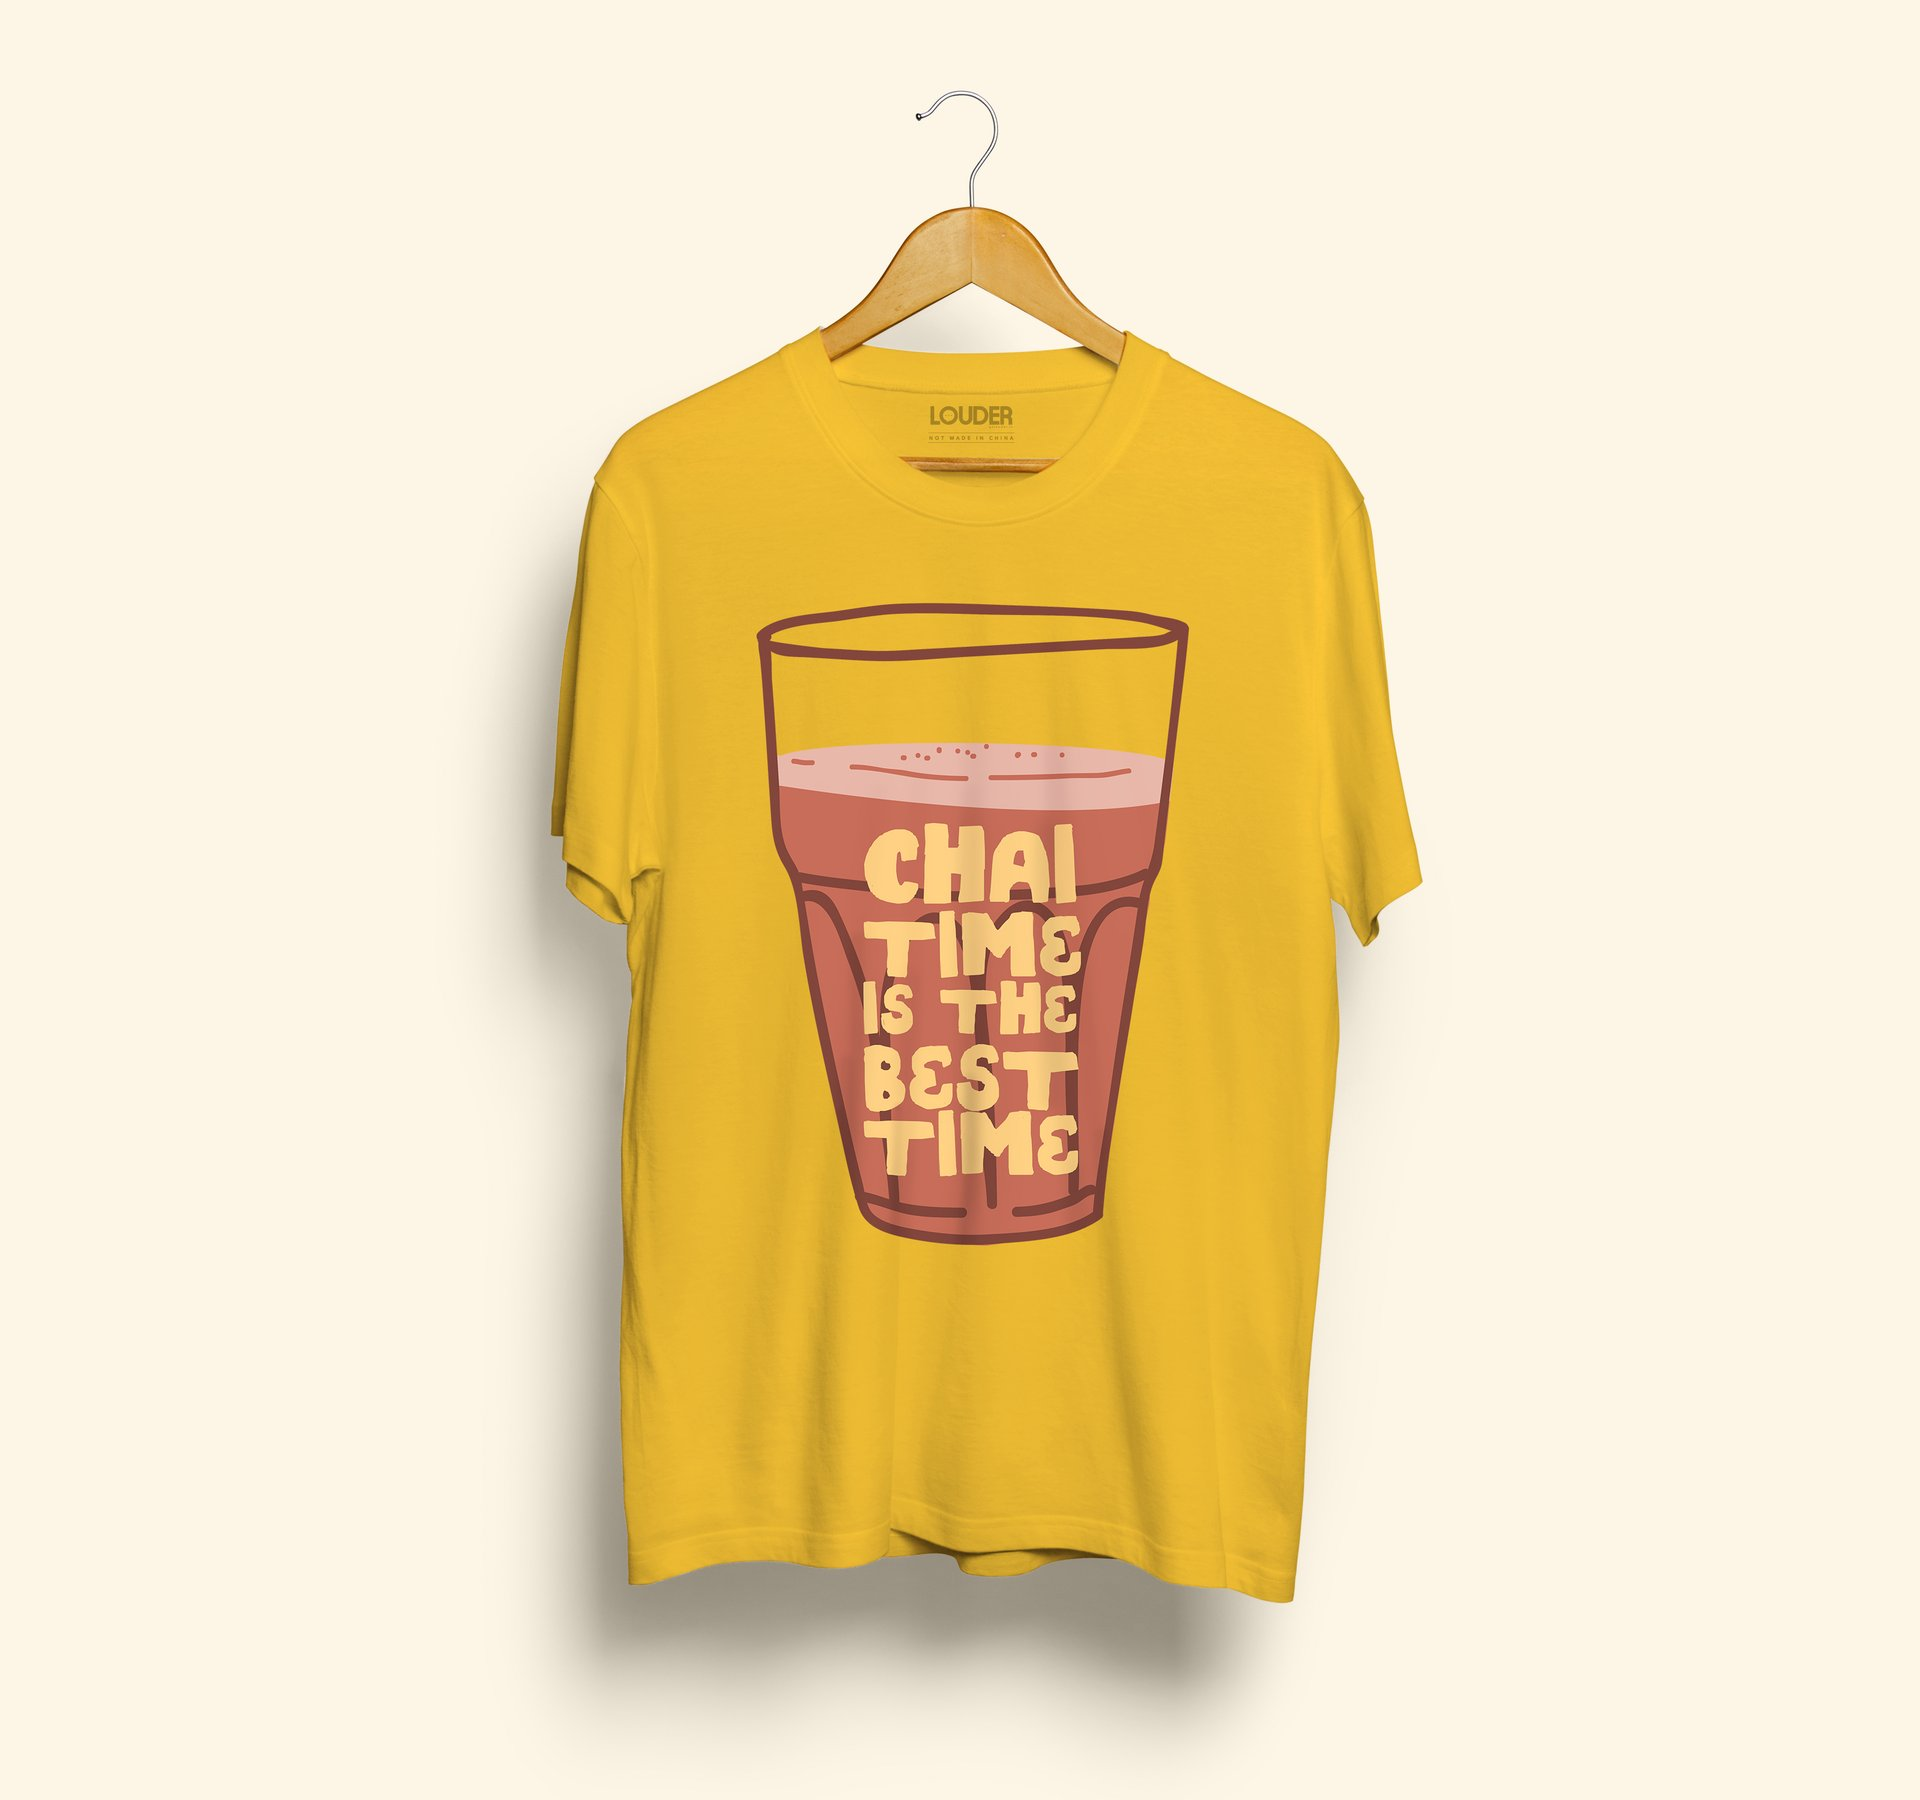 Chai Time is The Best Time T-shirt - ₹499